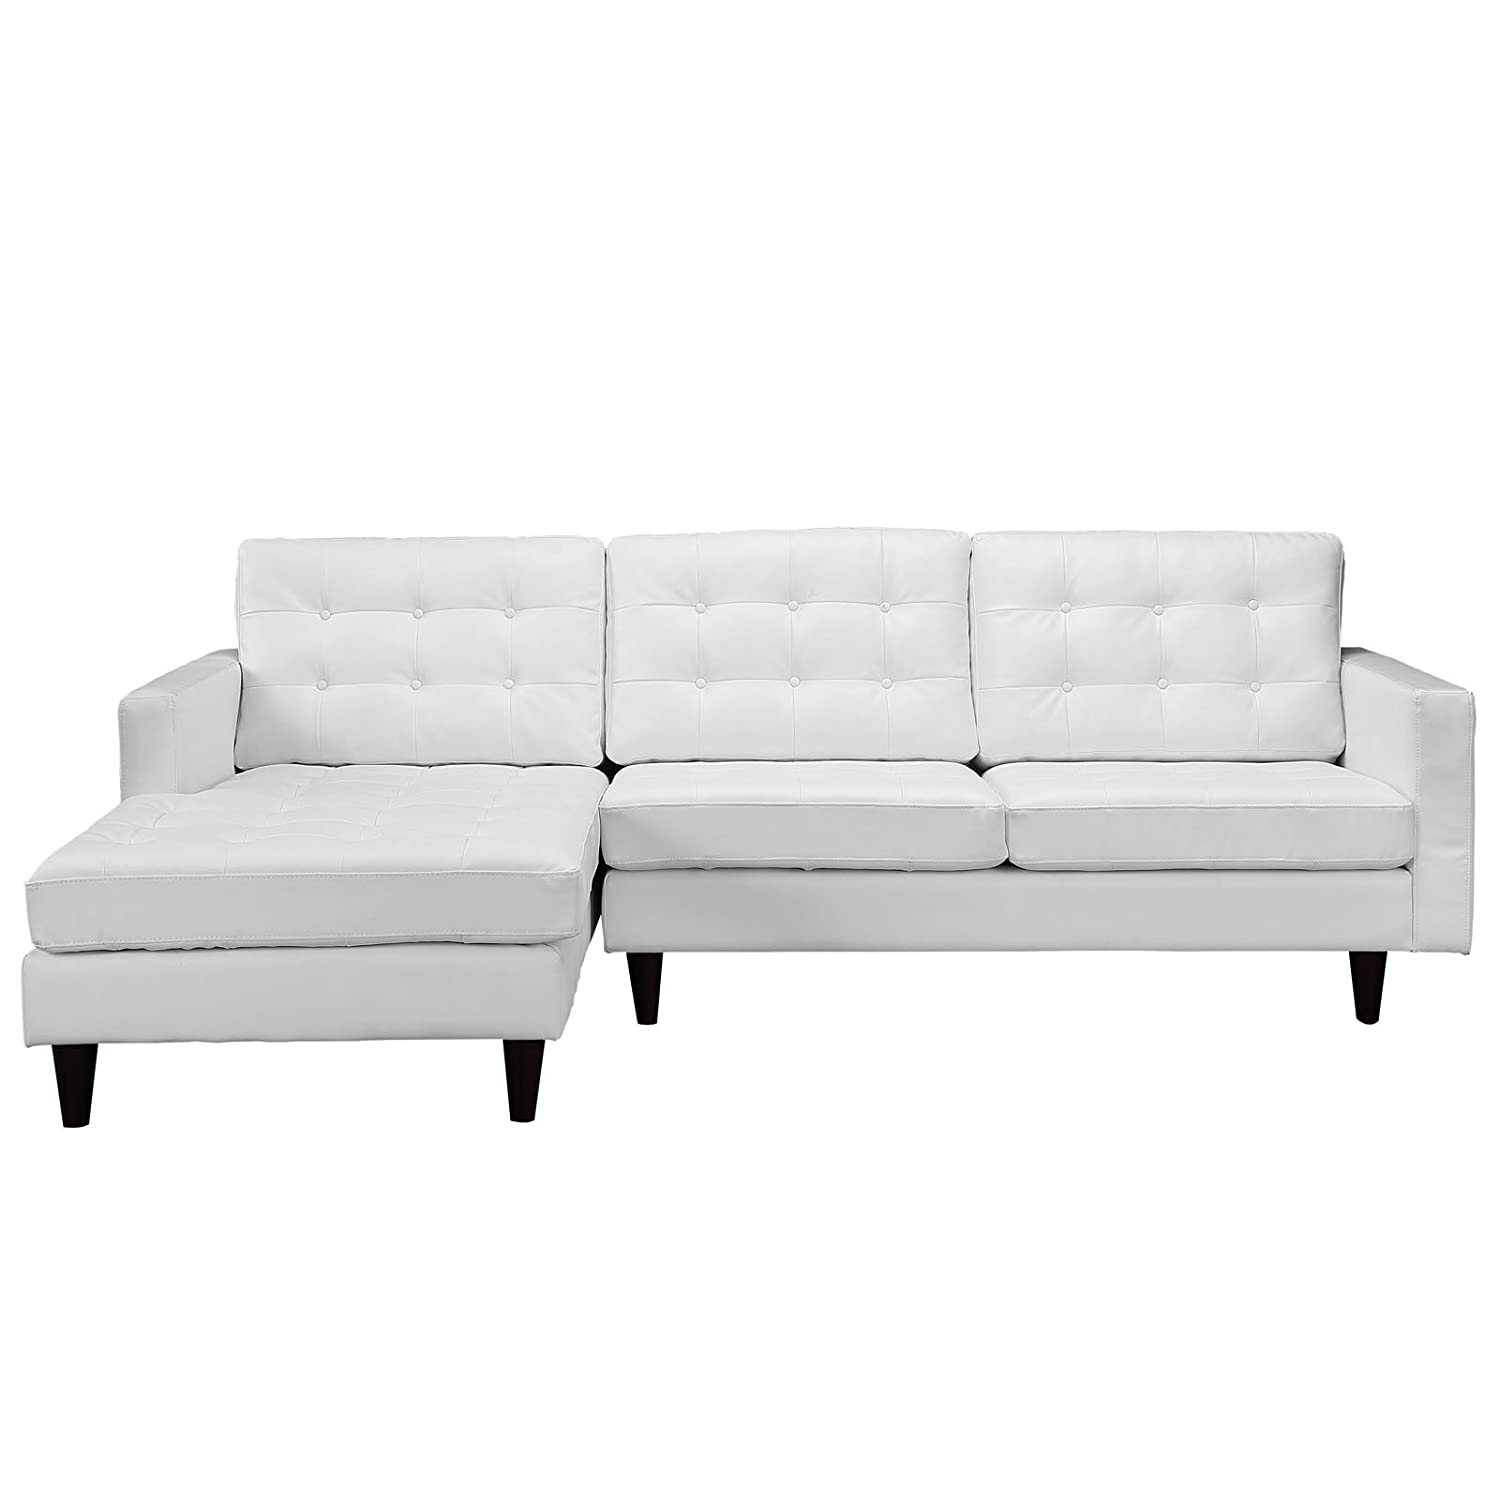 Amazon Modway Empress Left Facing Leather Sectional Sofa in